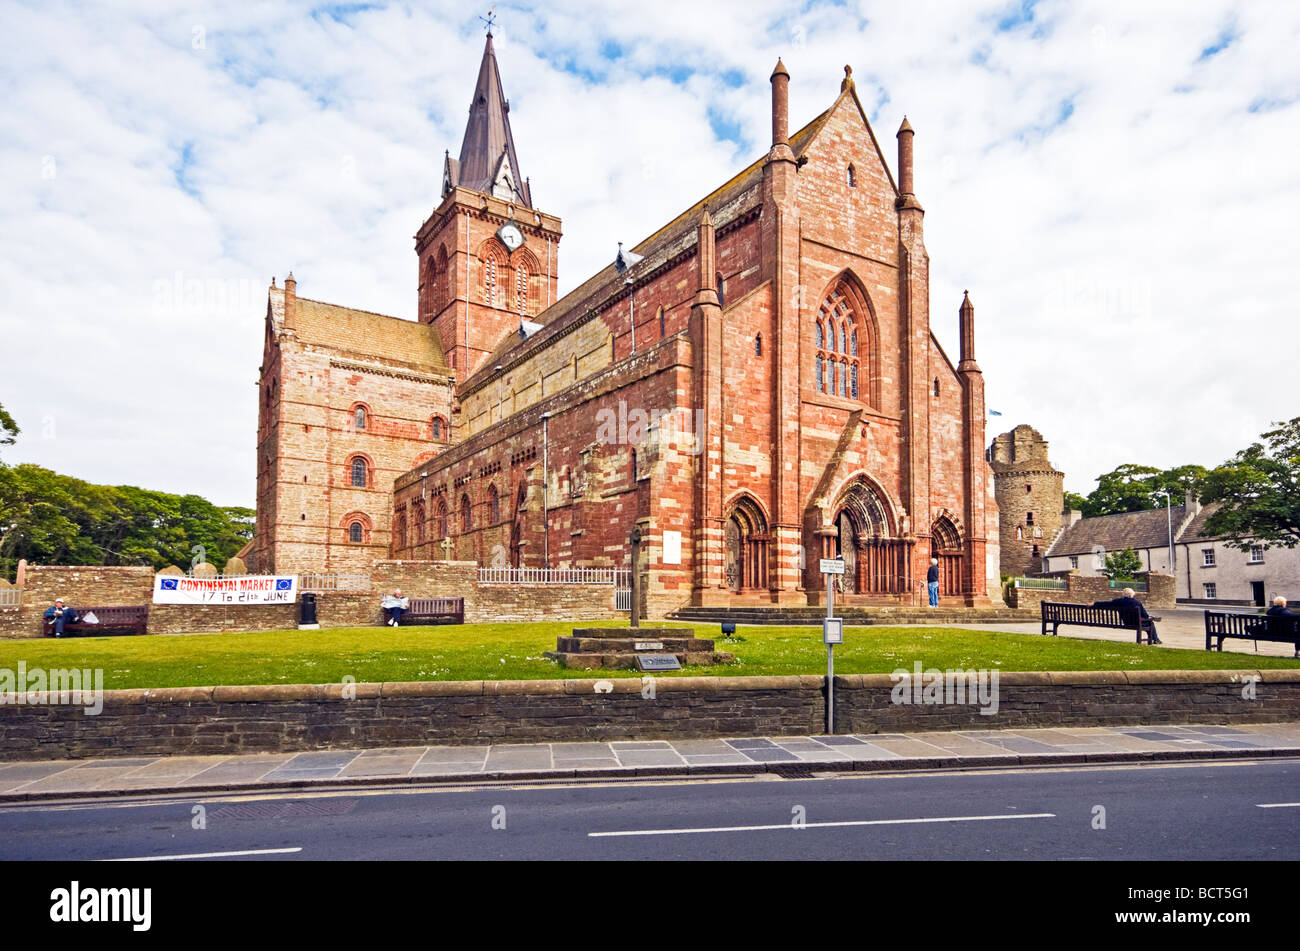 St. Magnus Cathedral in the centre of Kirkwall on the mainland of Orkney in Scotland - Stock Image